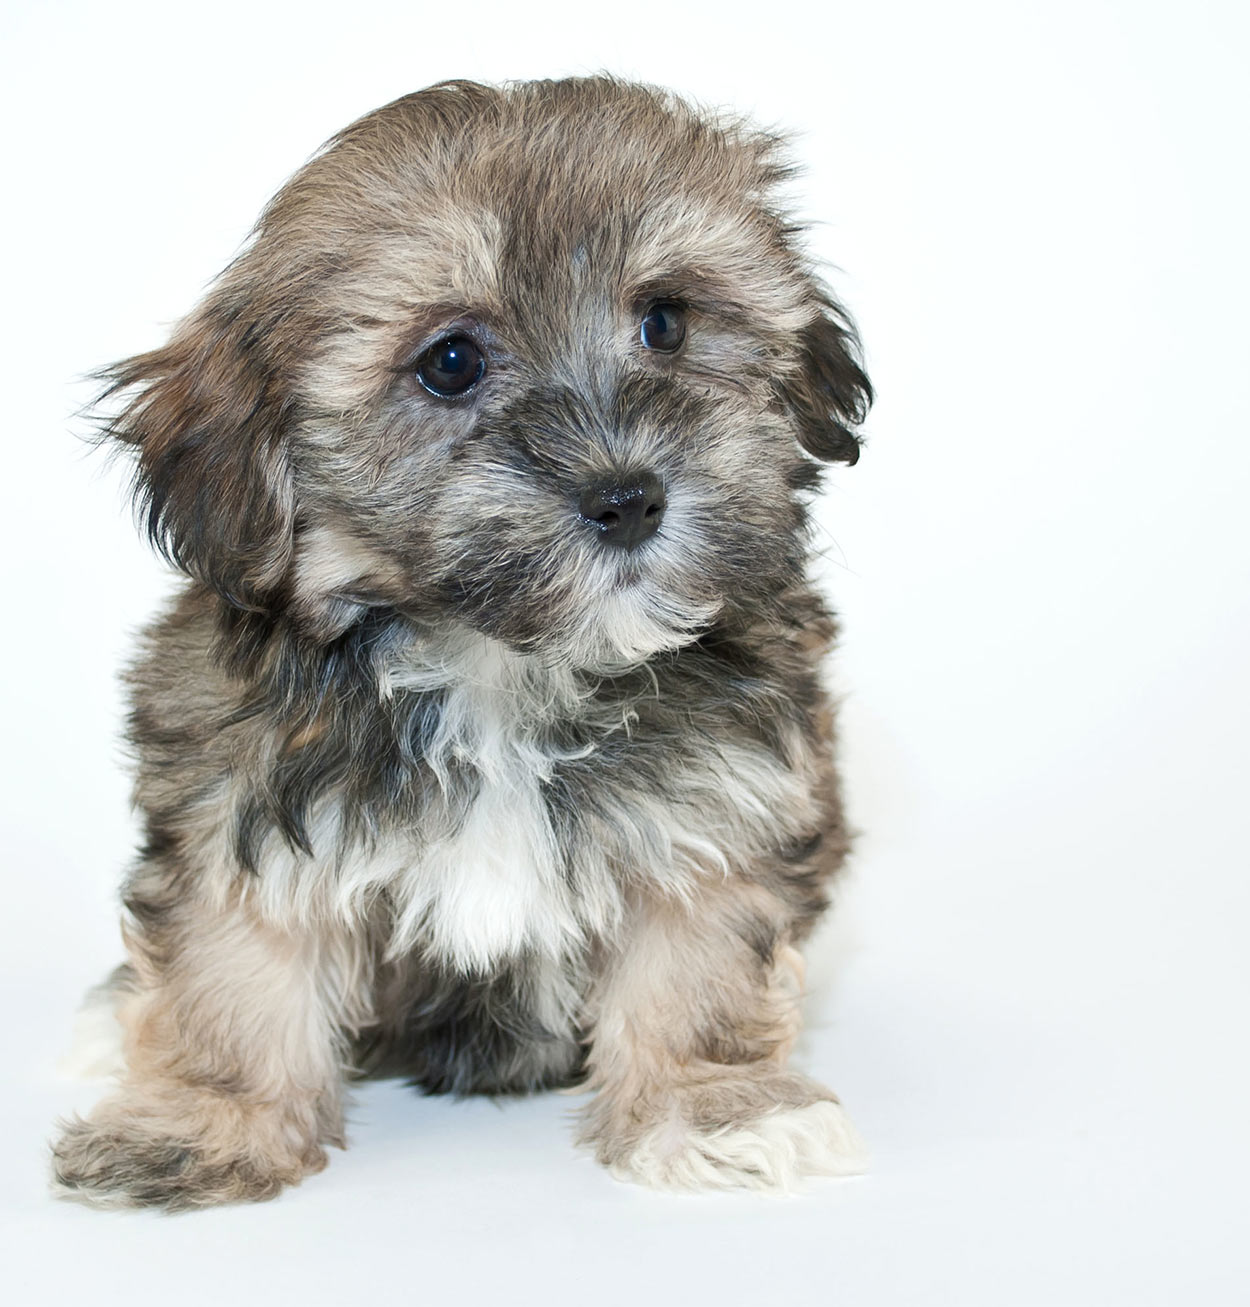 havanese - a contender for smallest dog in the world